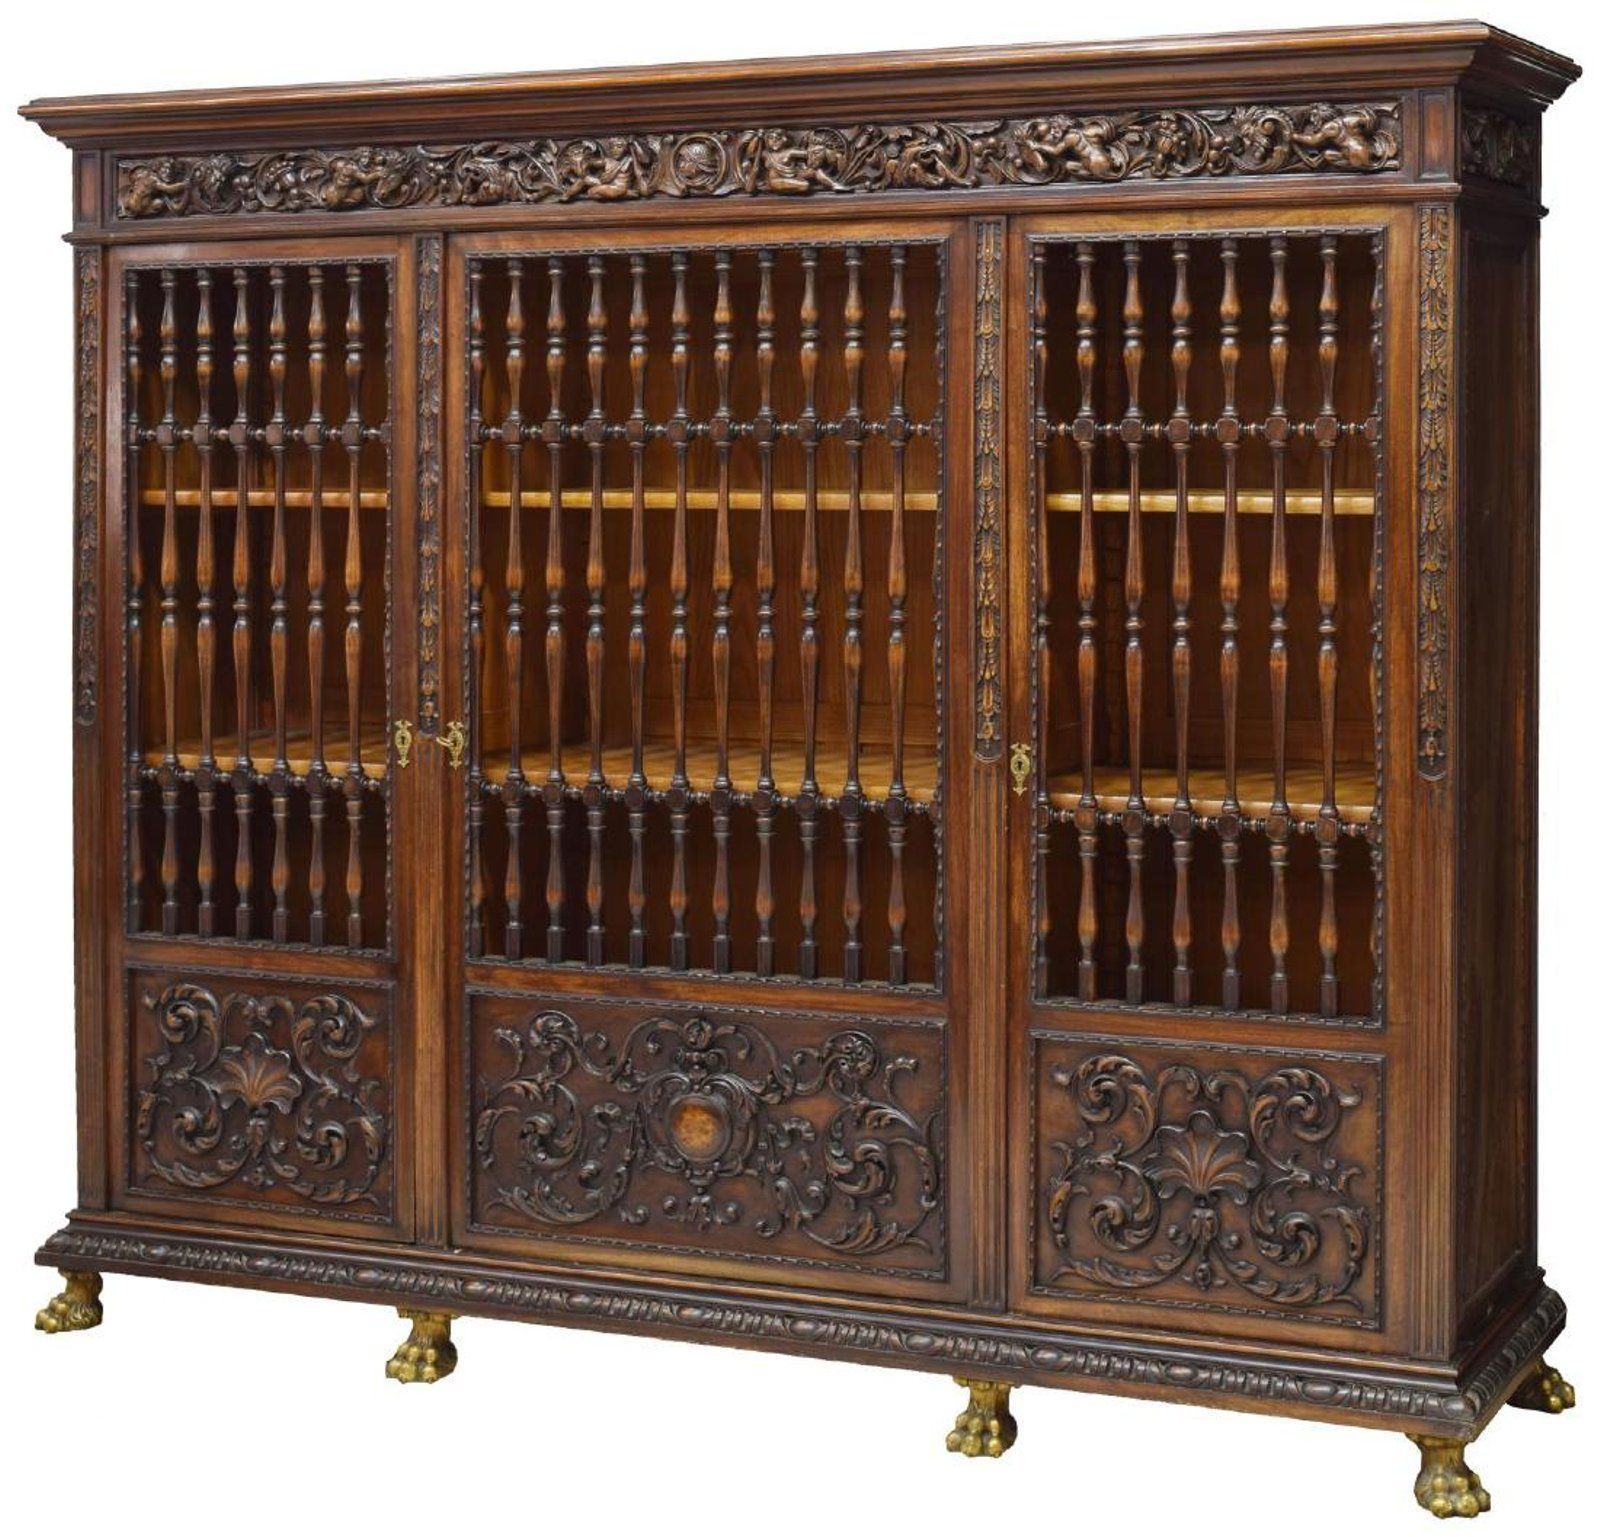 Spanish Gothic Revival Heavily Carved Oak Cabinet